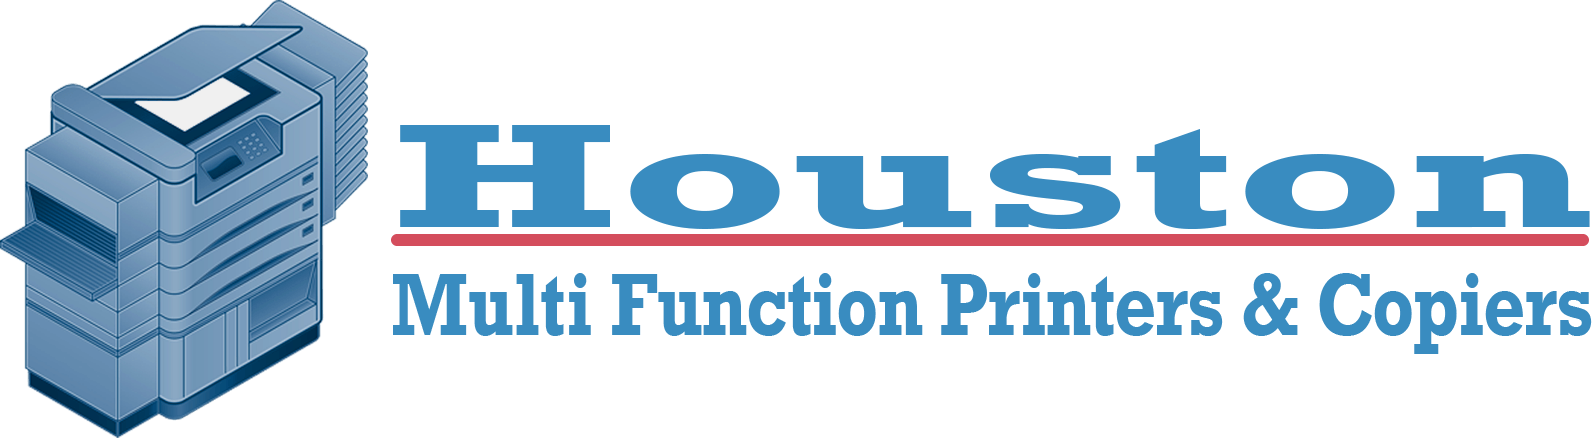 Houston Multi-Function Printers & Copiers – Sales, Service & Leasing